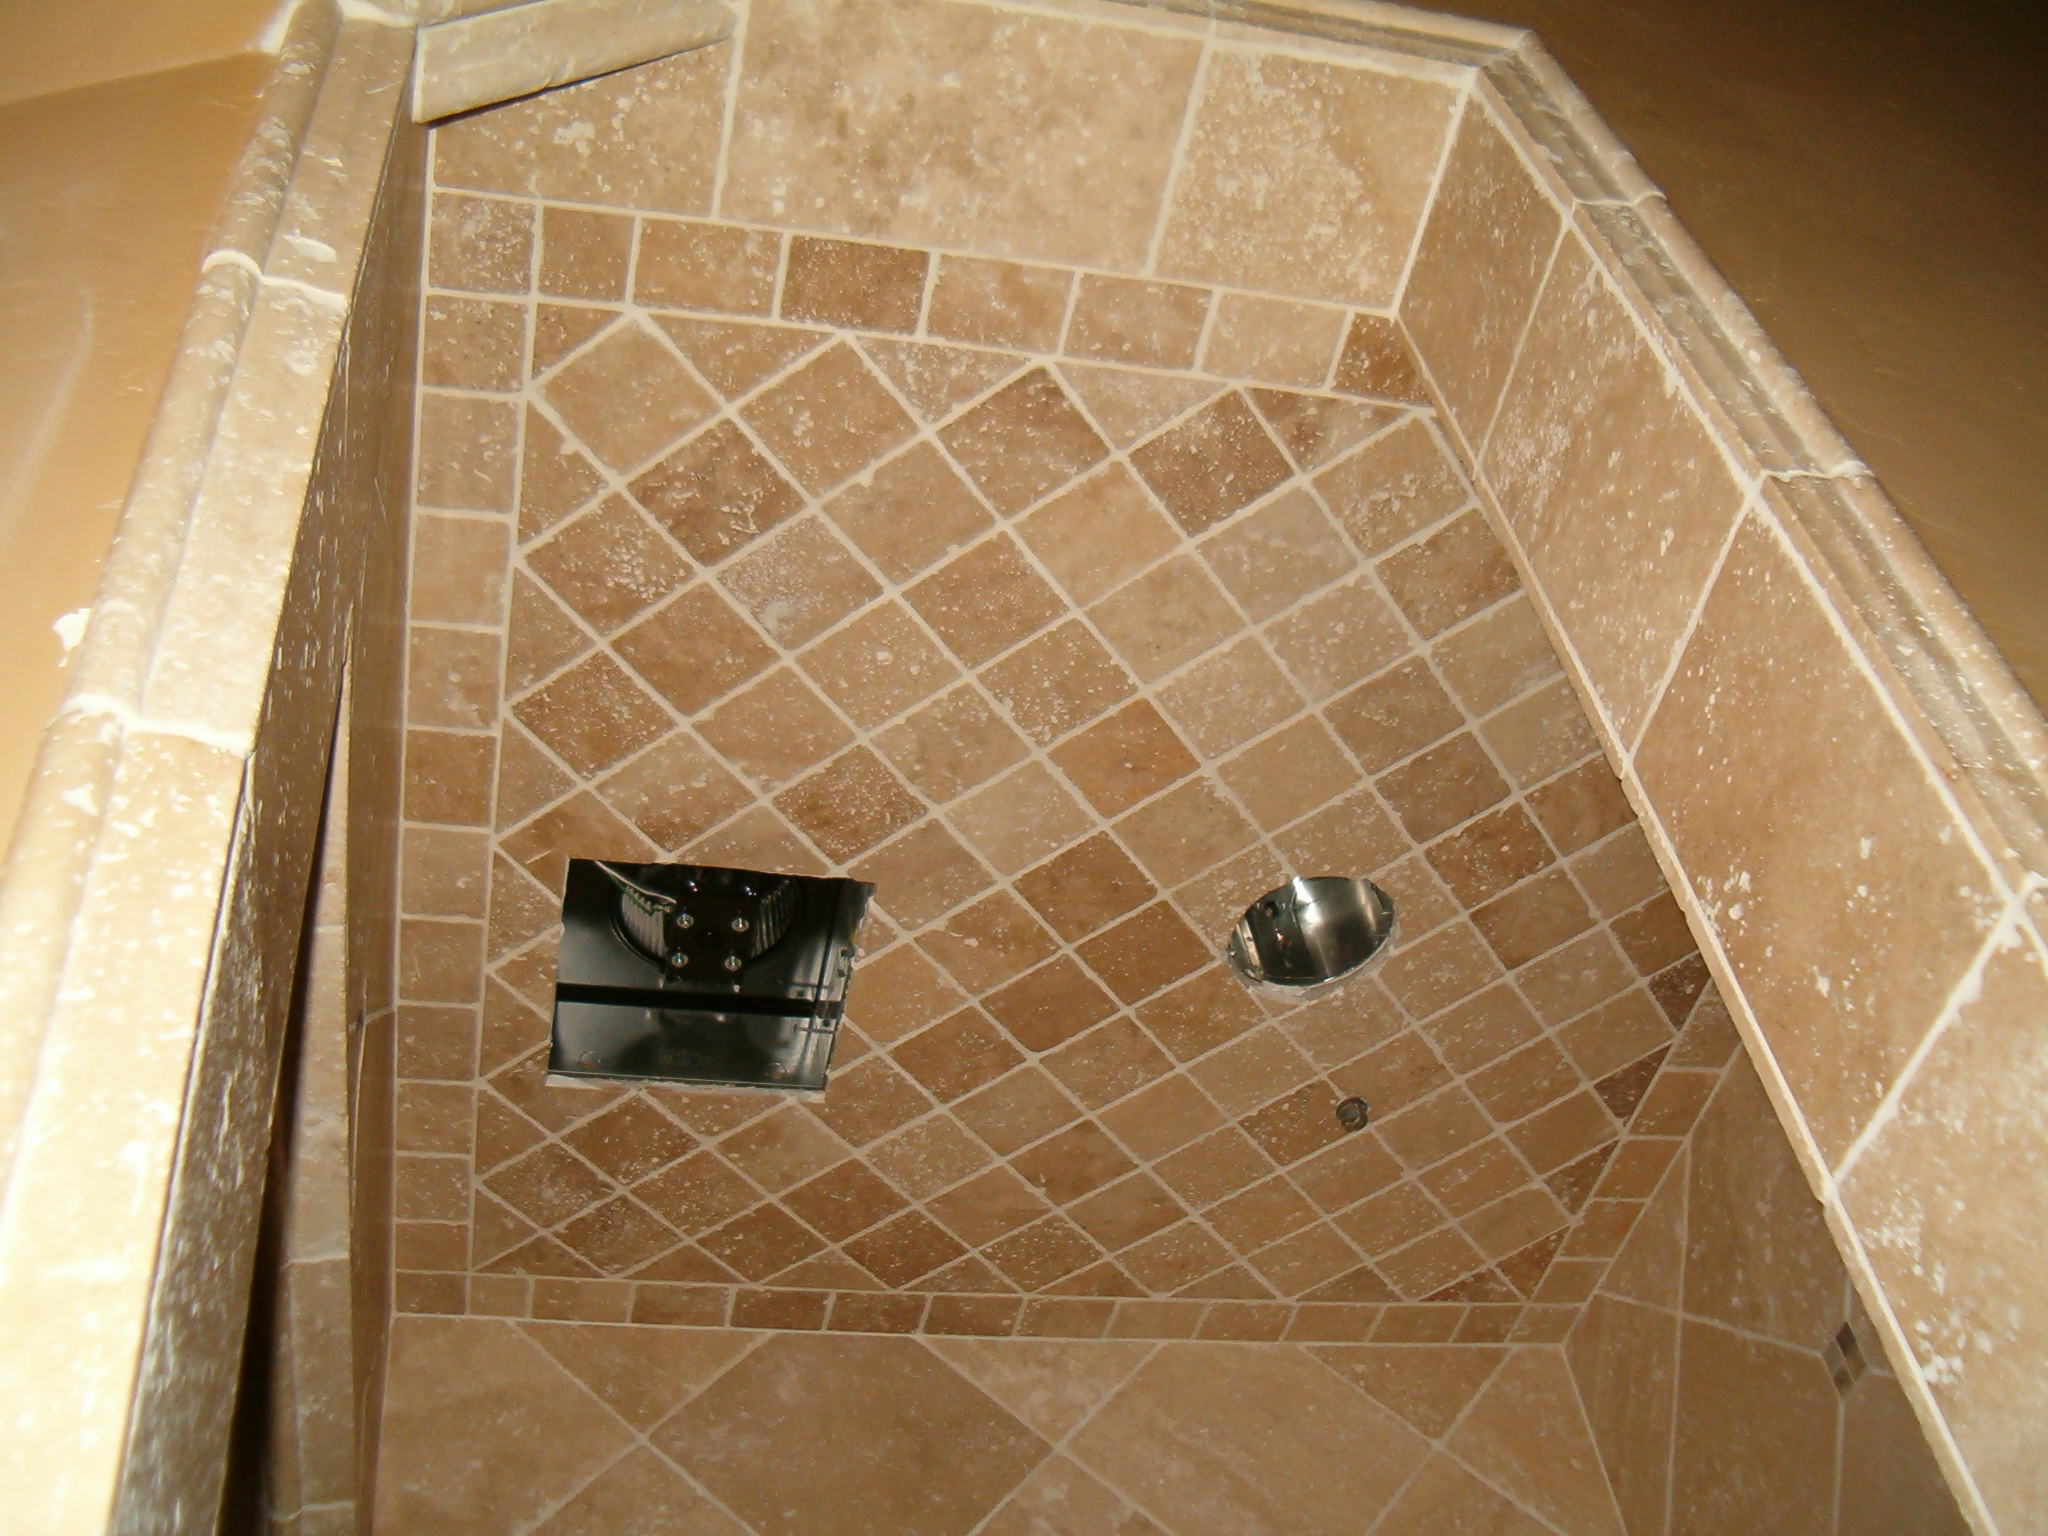 Best Tile For Shower Floor Joy Studio Design Gallery Best Design